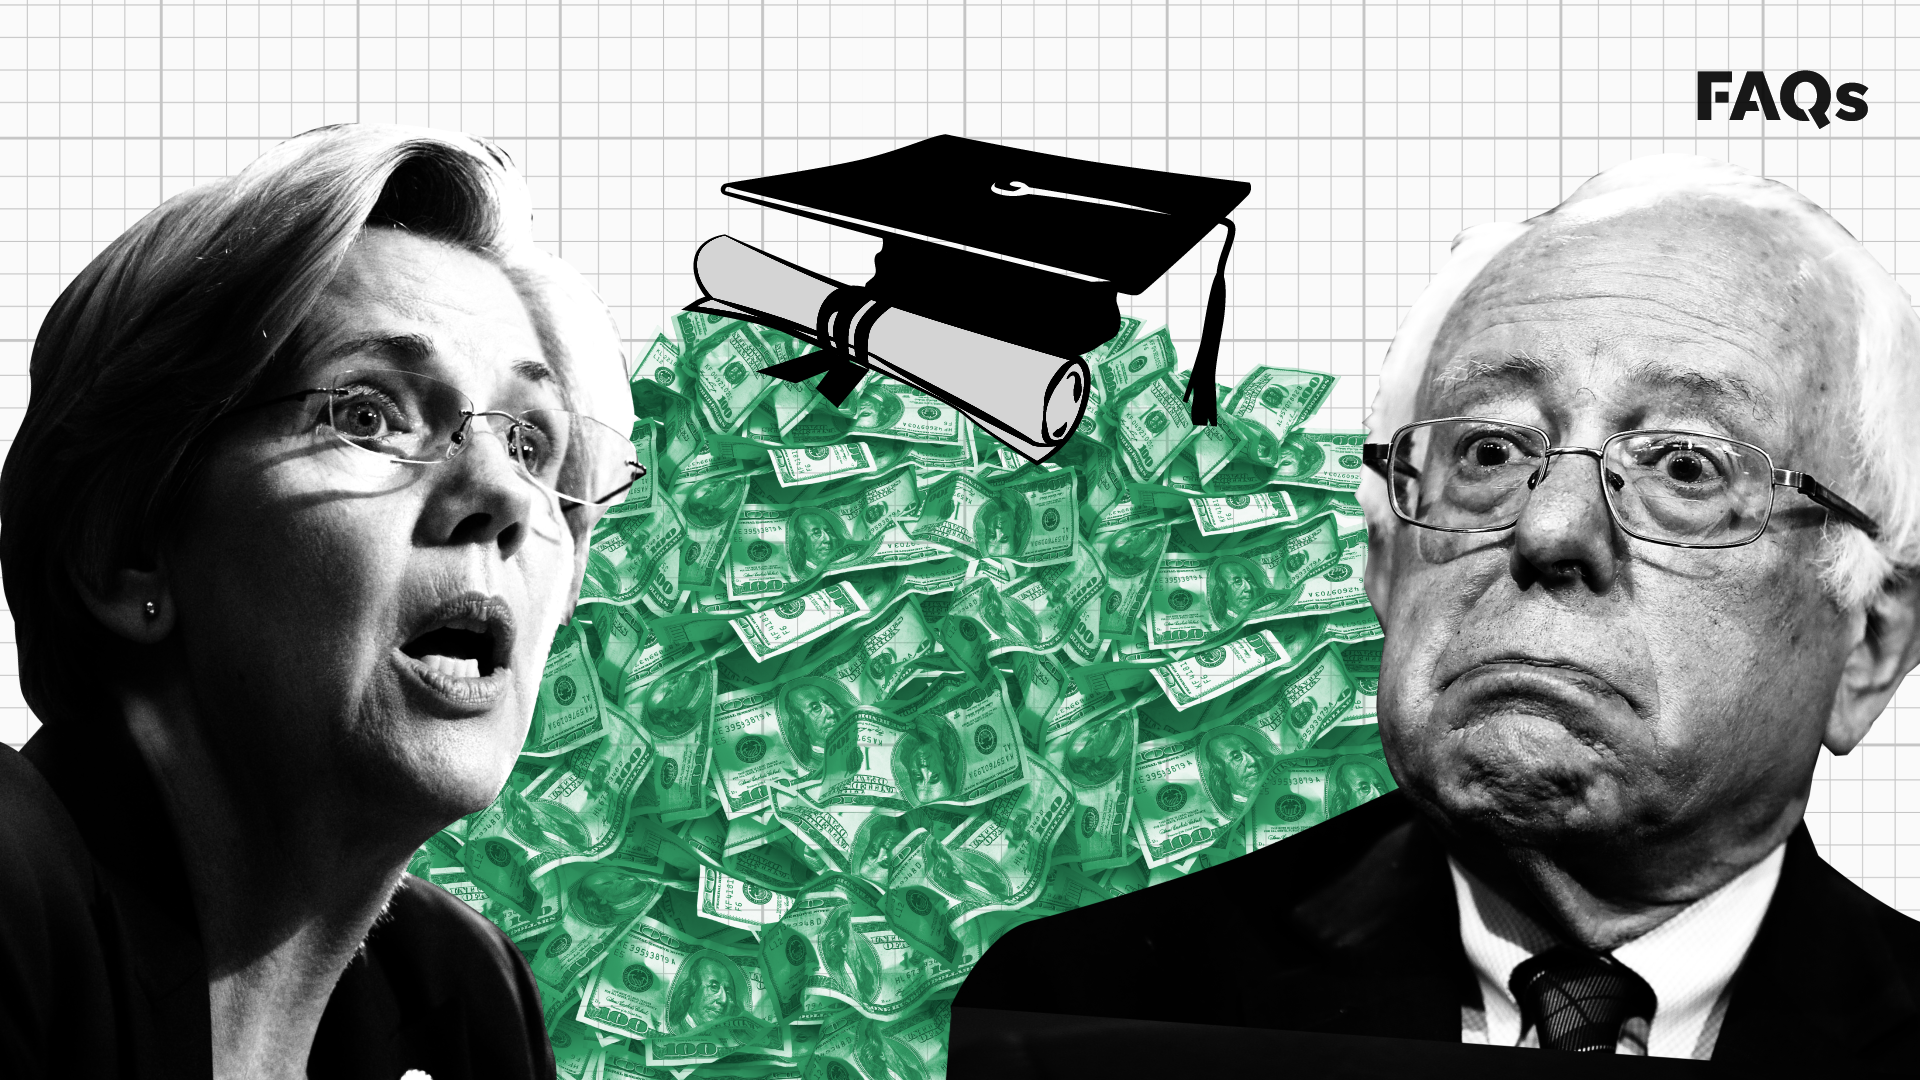 Sen. Chuck Grassley says Sen. Bernie Sanders' student loan debt plan would help wealthy, hurt working people